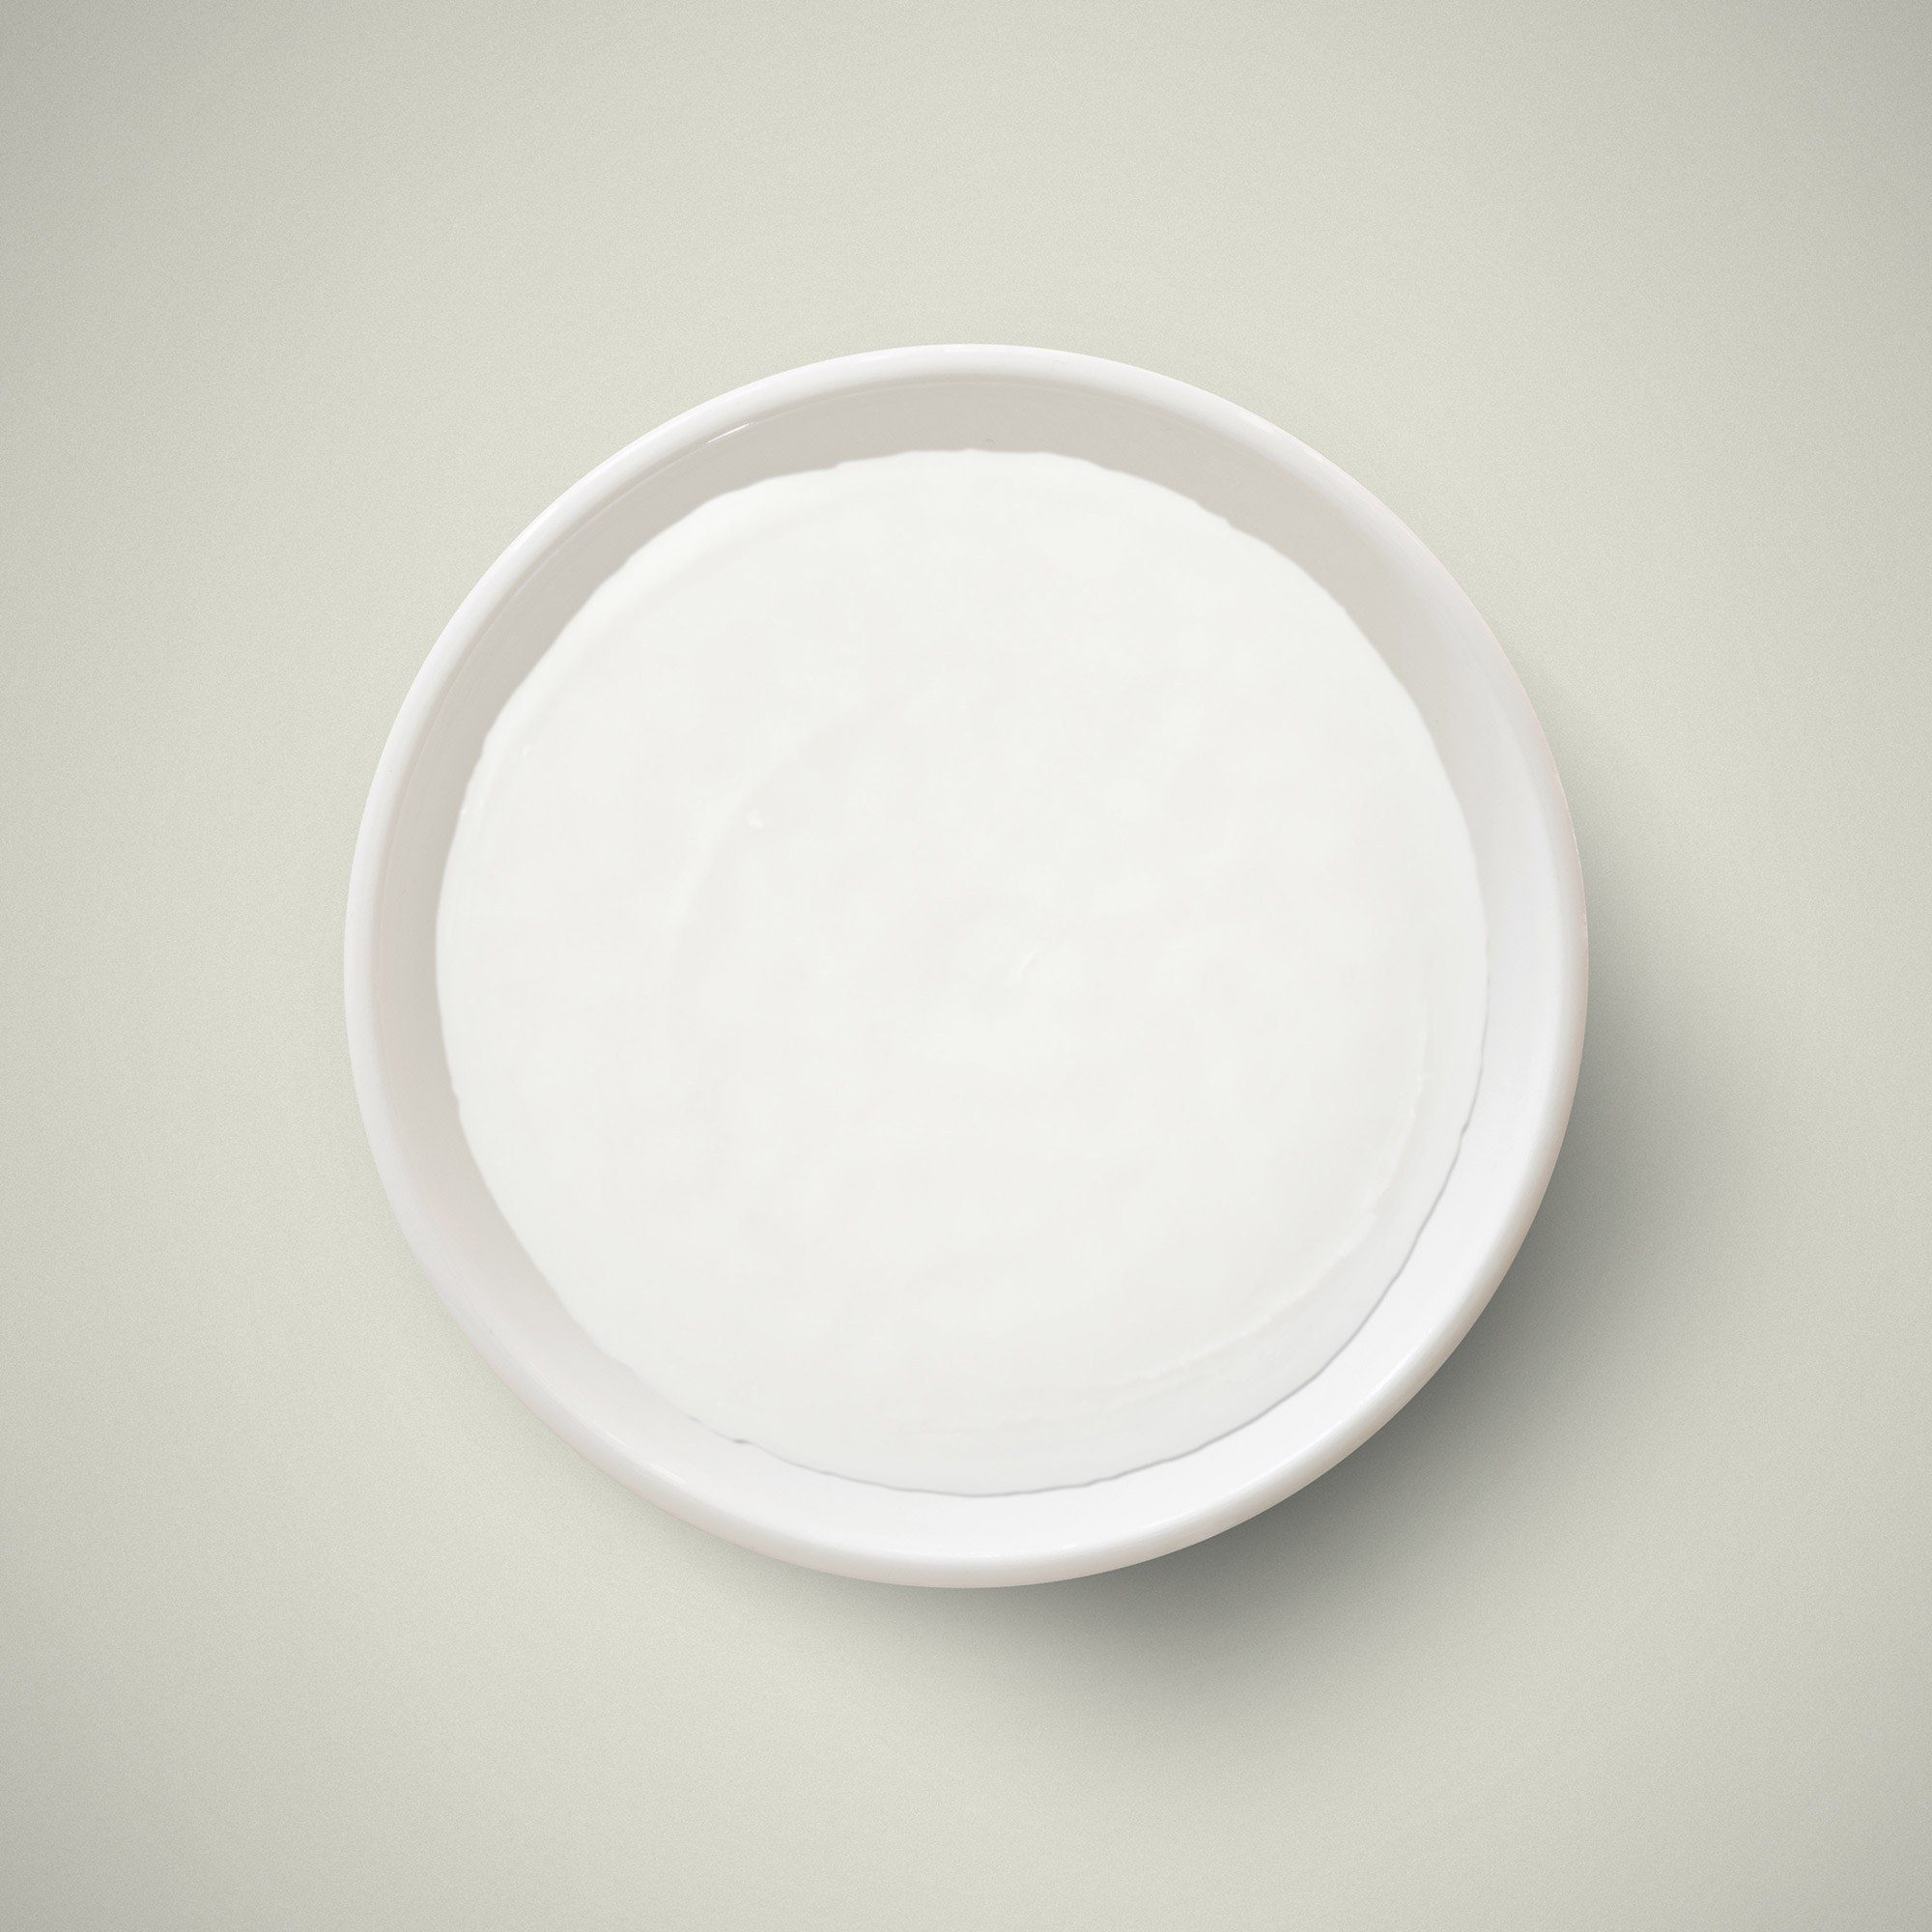 White melt and pour soap base in a bowl. Browse our range of soap making supplies.